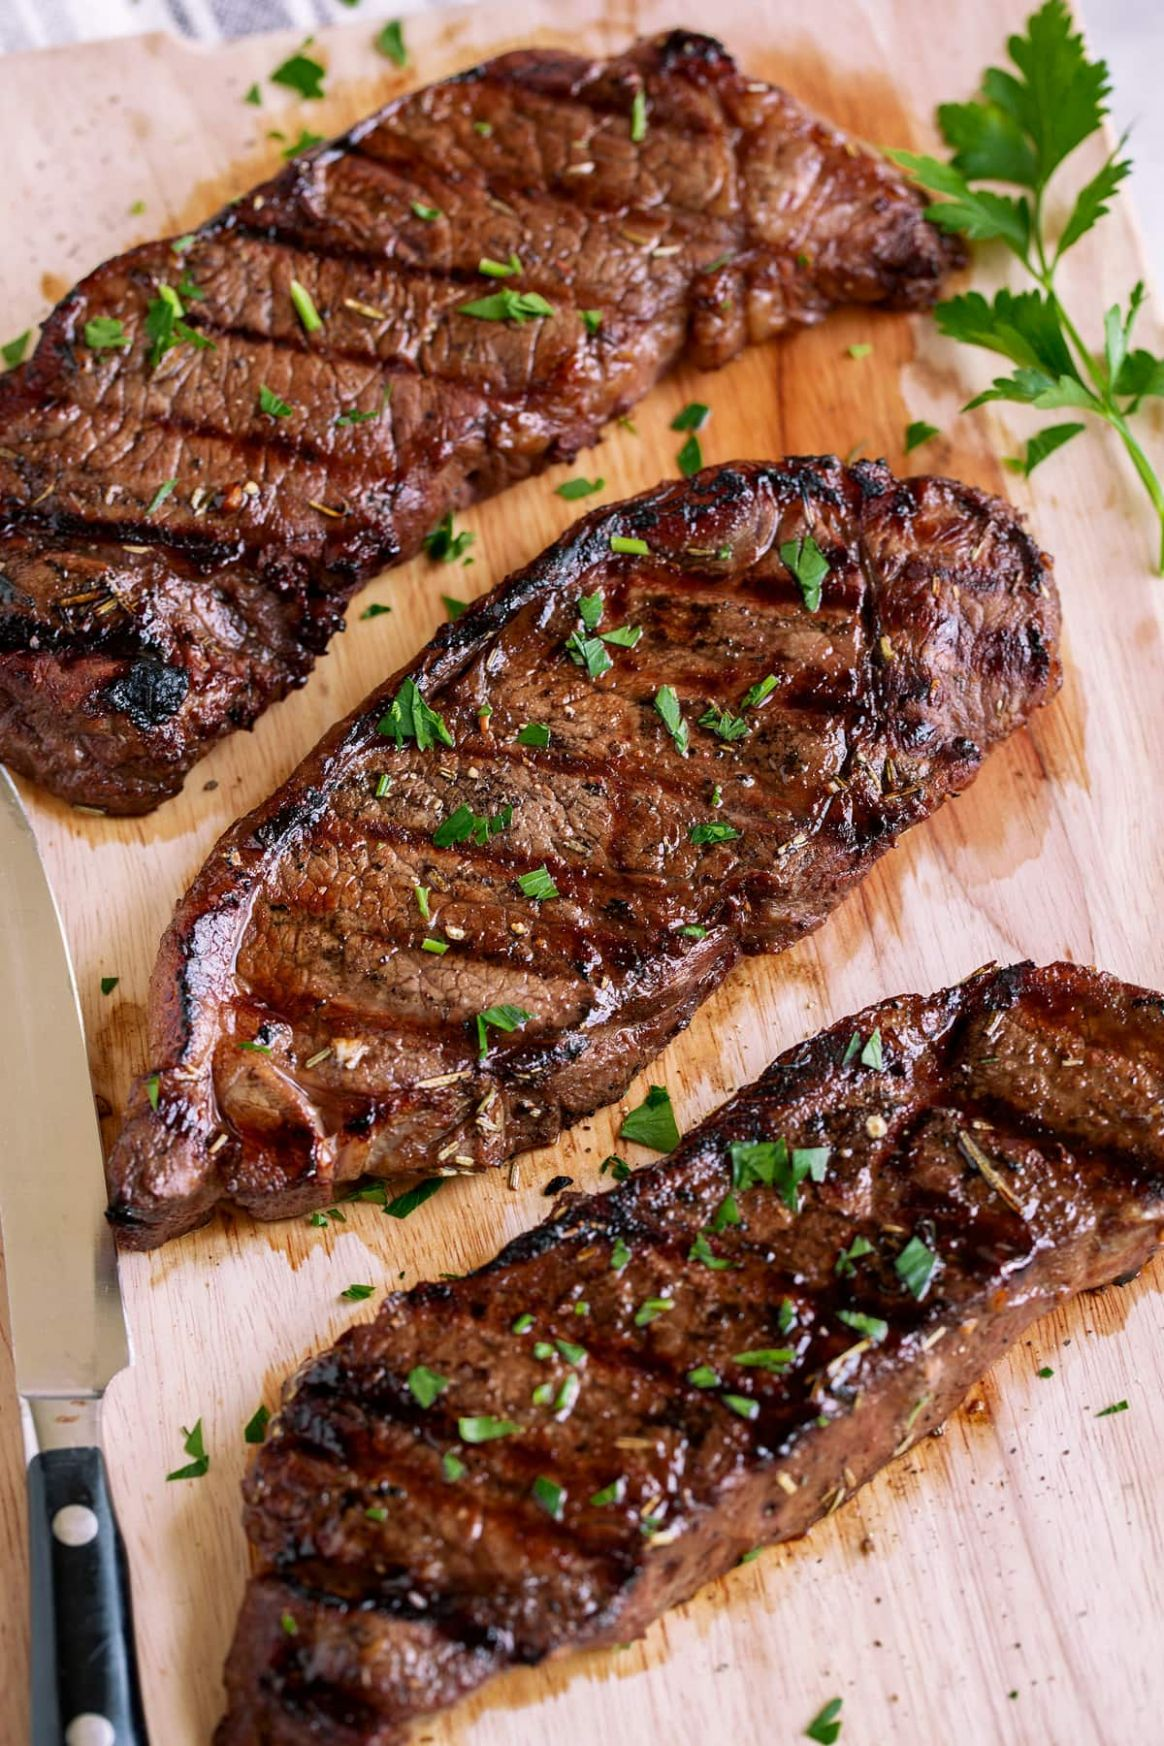 Best Steak Marinade Easy and So Flavorful! - Cooking Classy - Recipes Beef Marinade